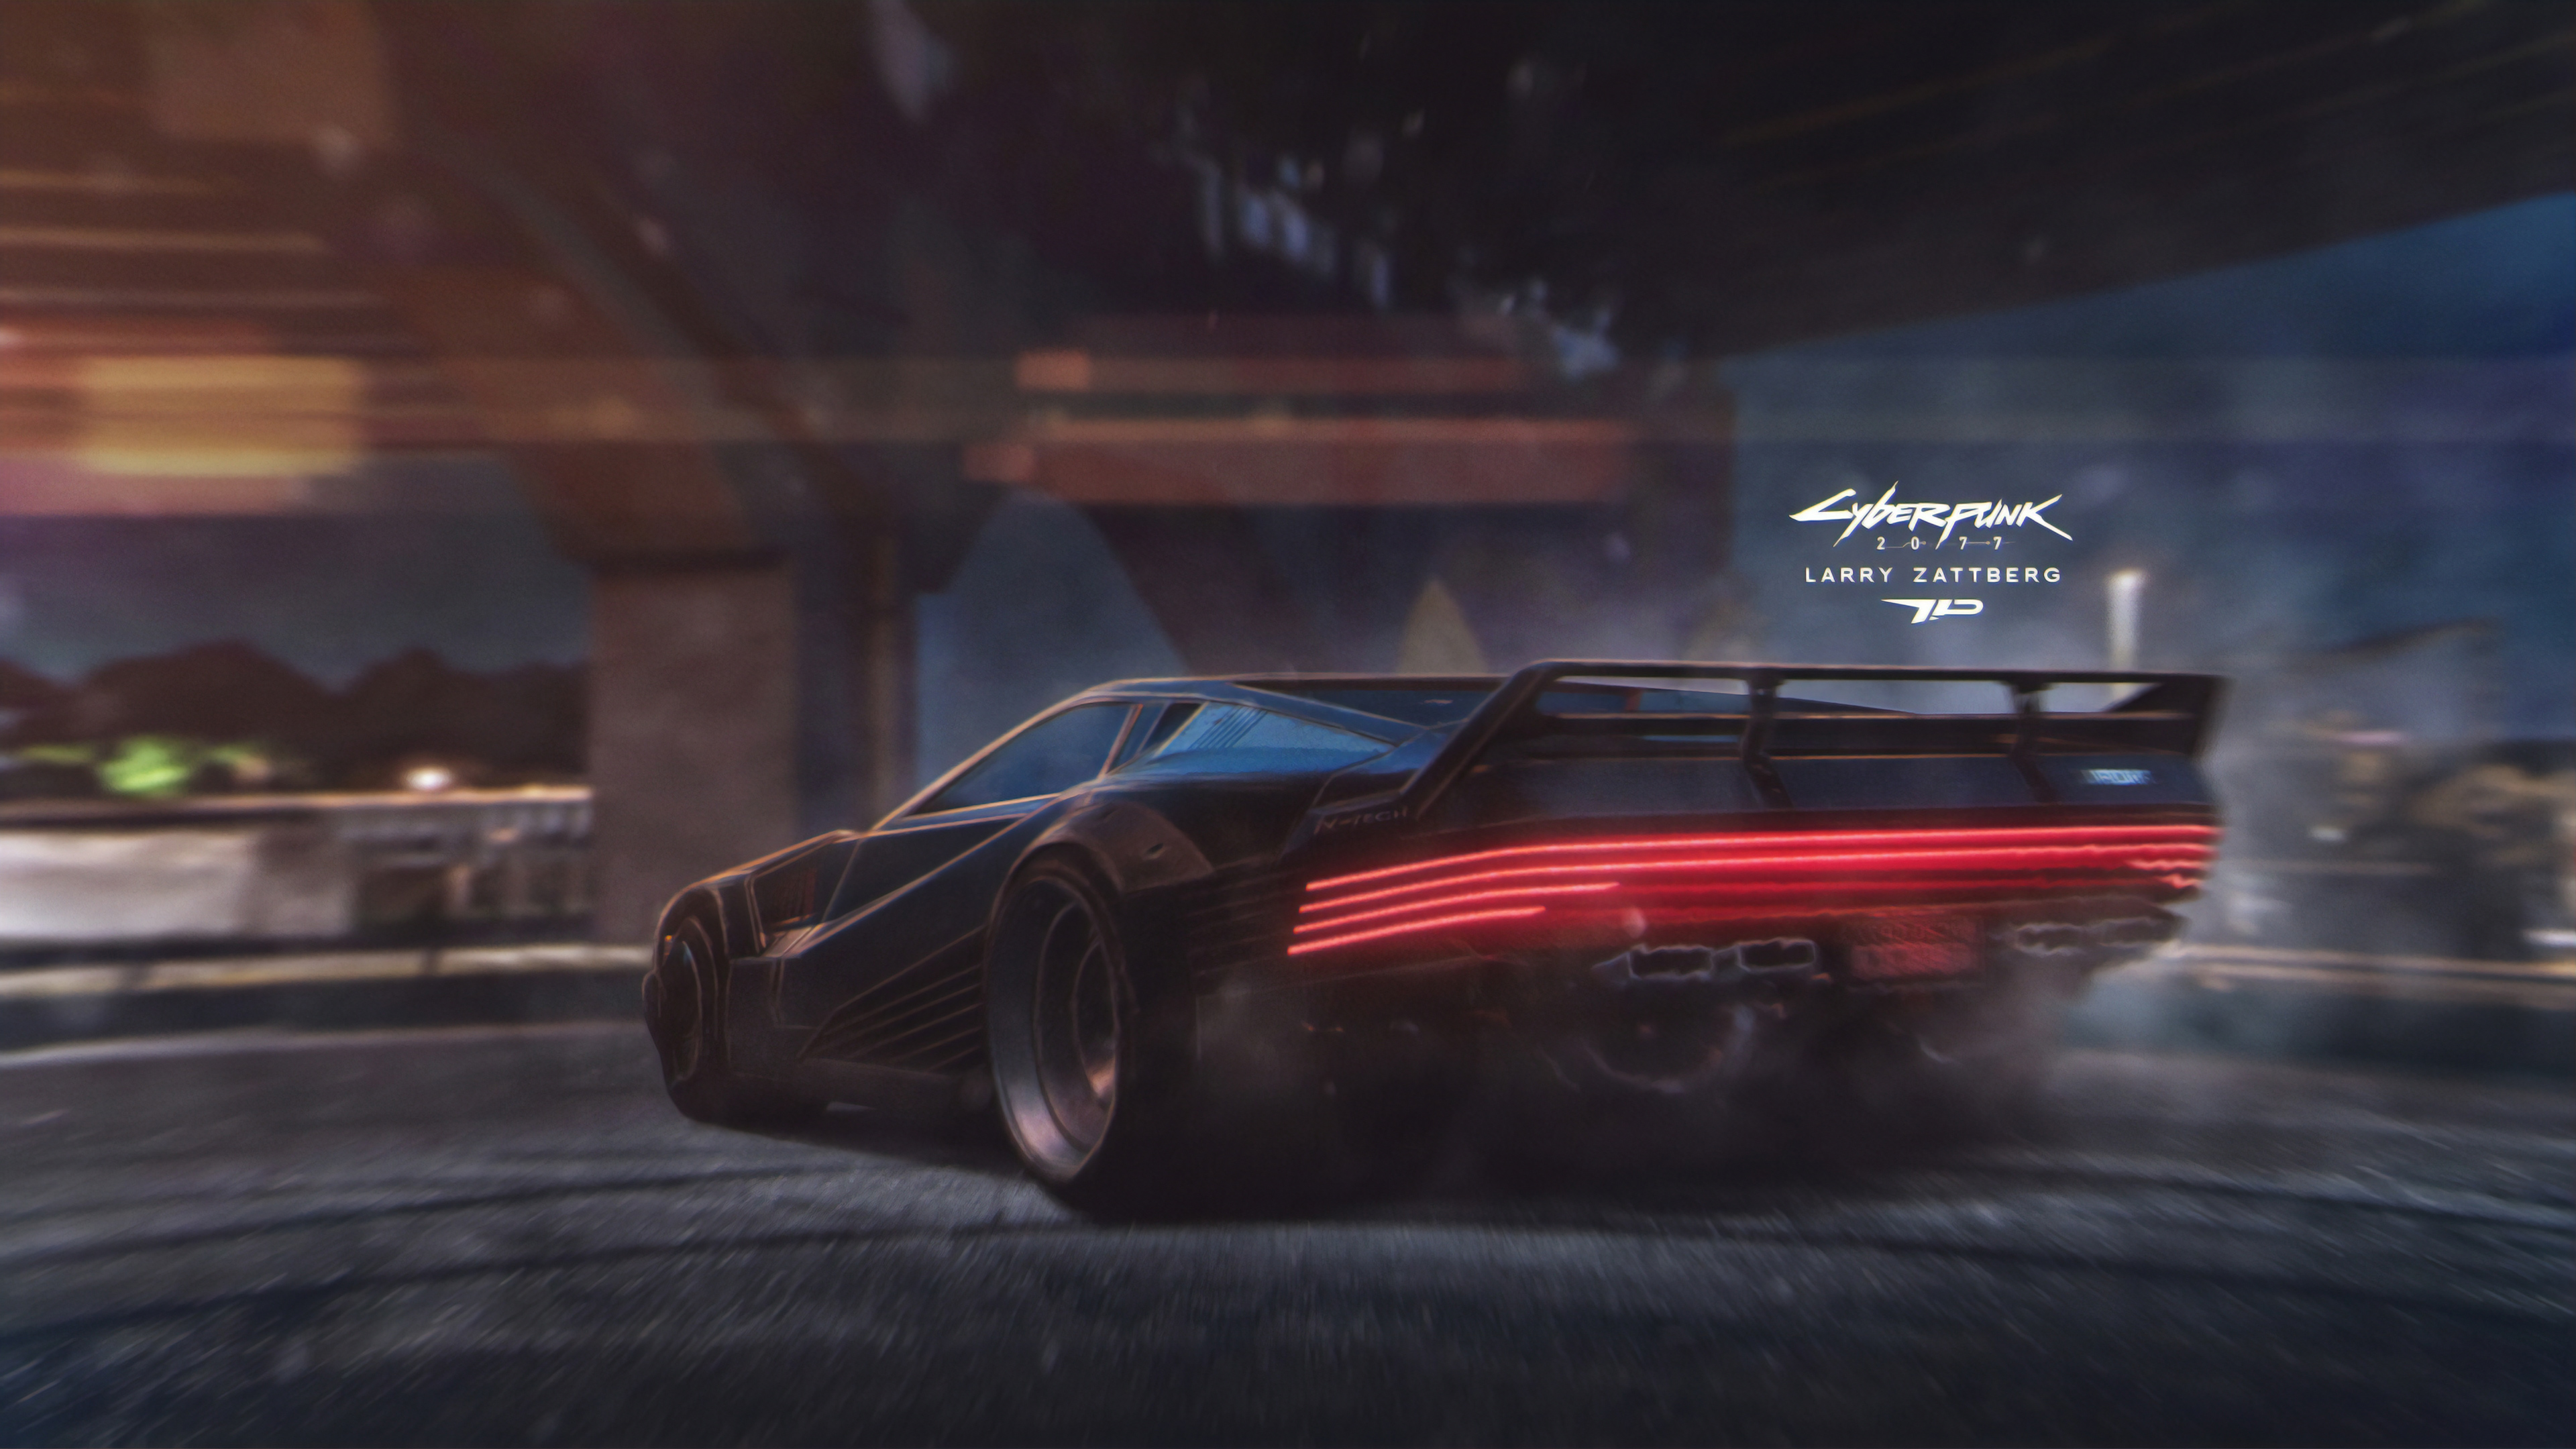 cyberpunk 2077 car 4k 1560534710 - Cyberpunk 2077 Car 4k - xbox games wallpapers, ps games wallpapers, pc games wallpapers, hd-wallpapers, games wallpapers, cyberpunk 2077 wallpapers, artstation wallpapers, 4k-wallpapers